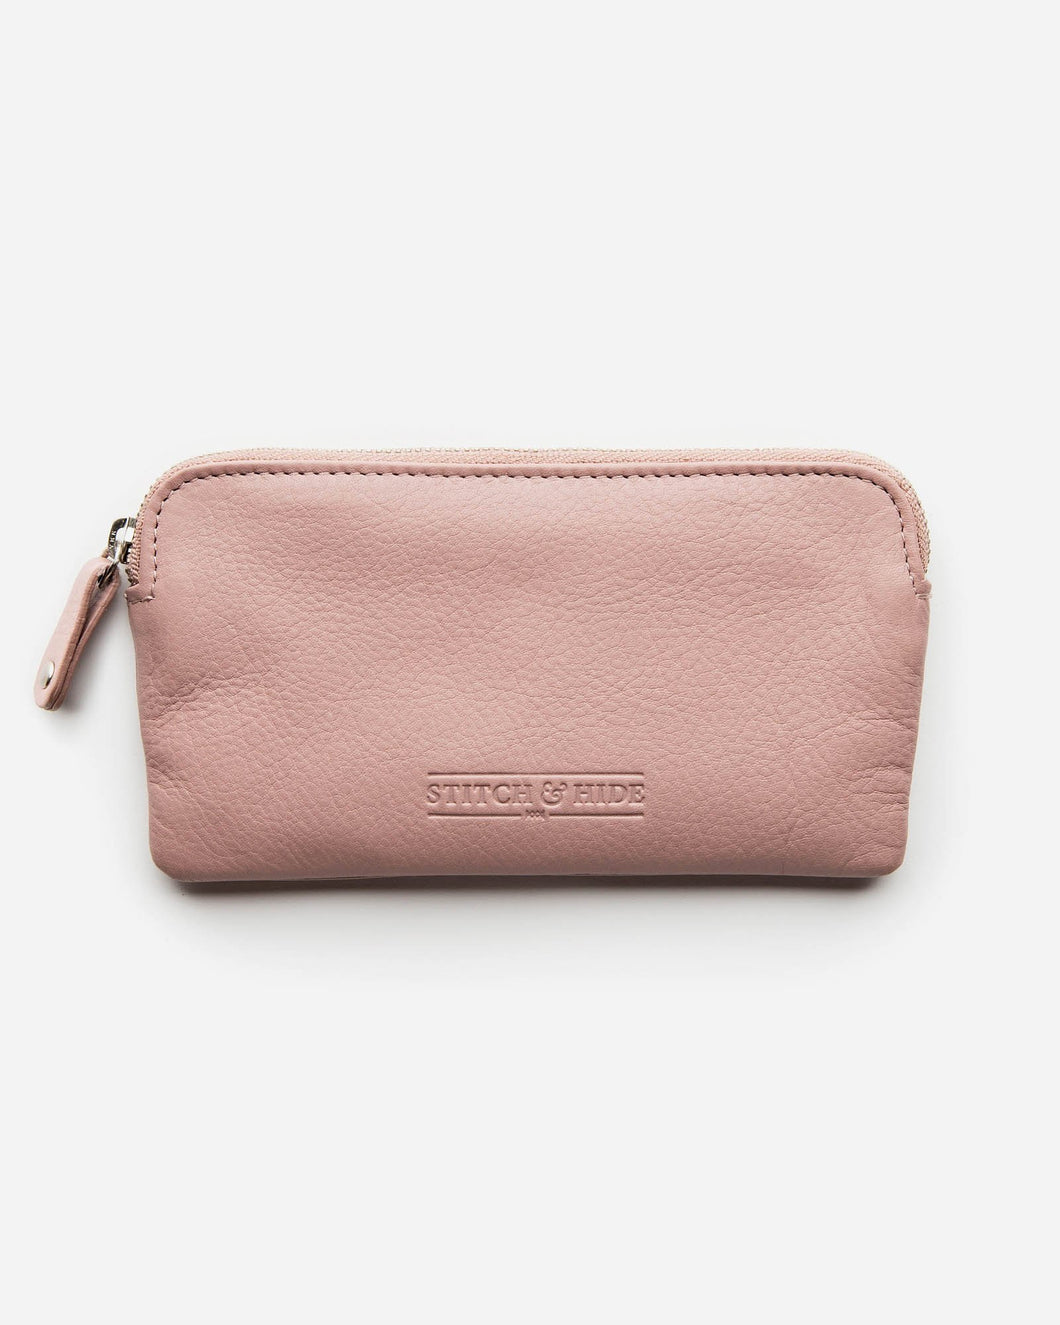 STITCH & HIDE - LUCY POUCH DUSTY ROSE